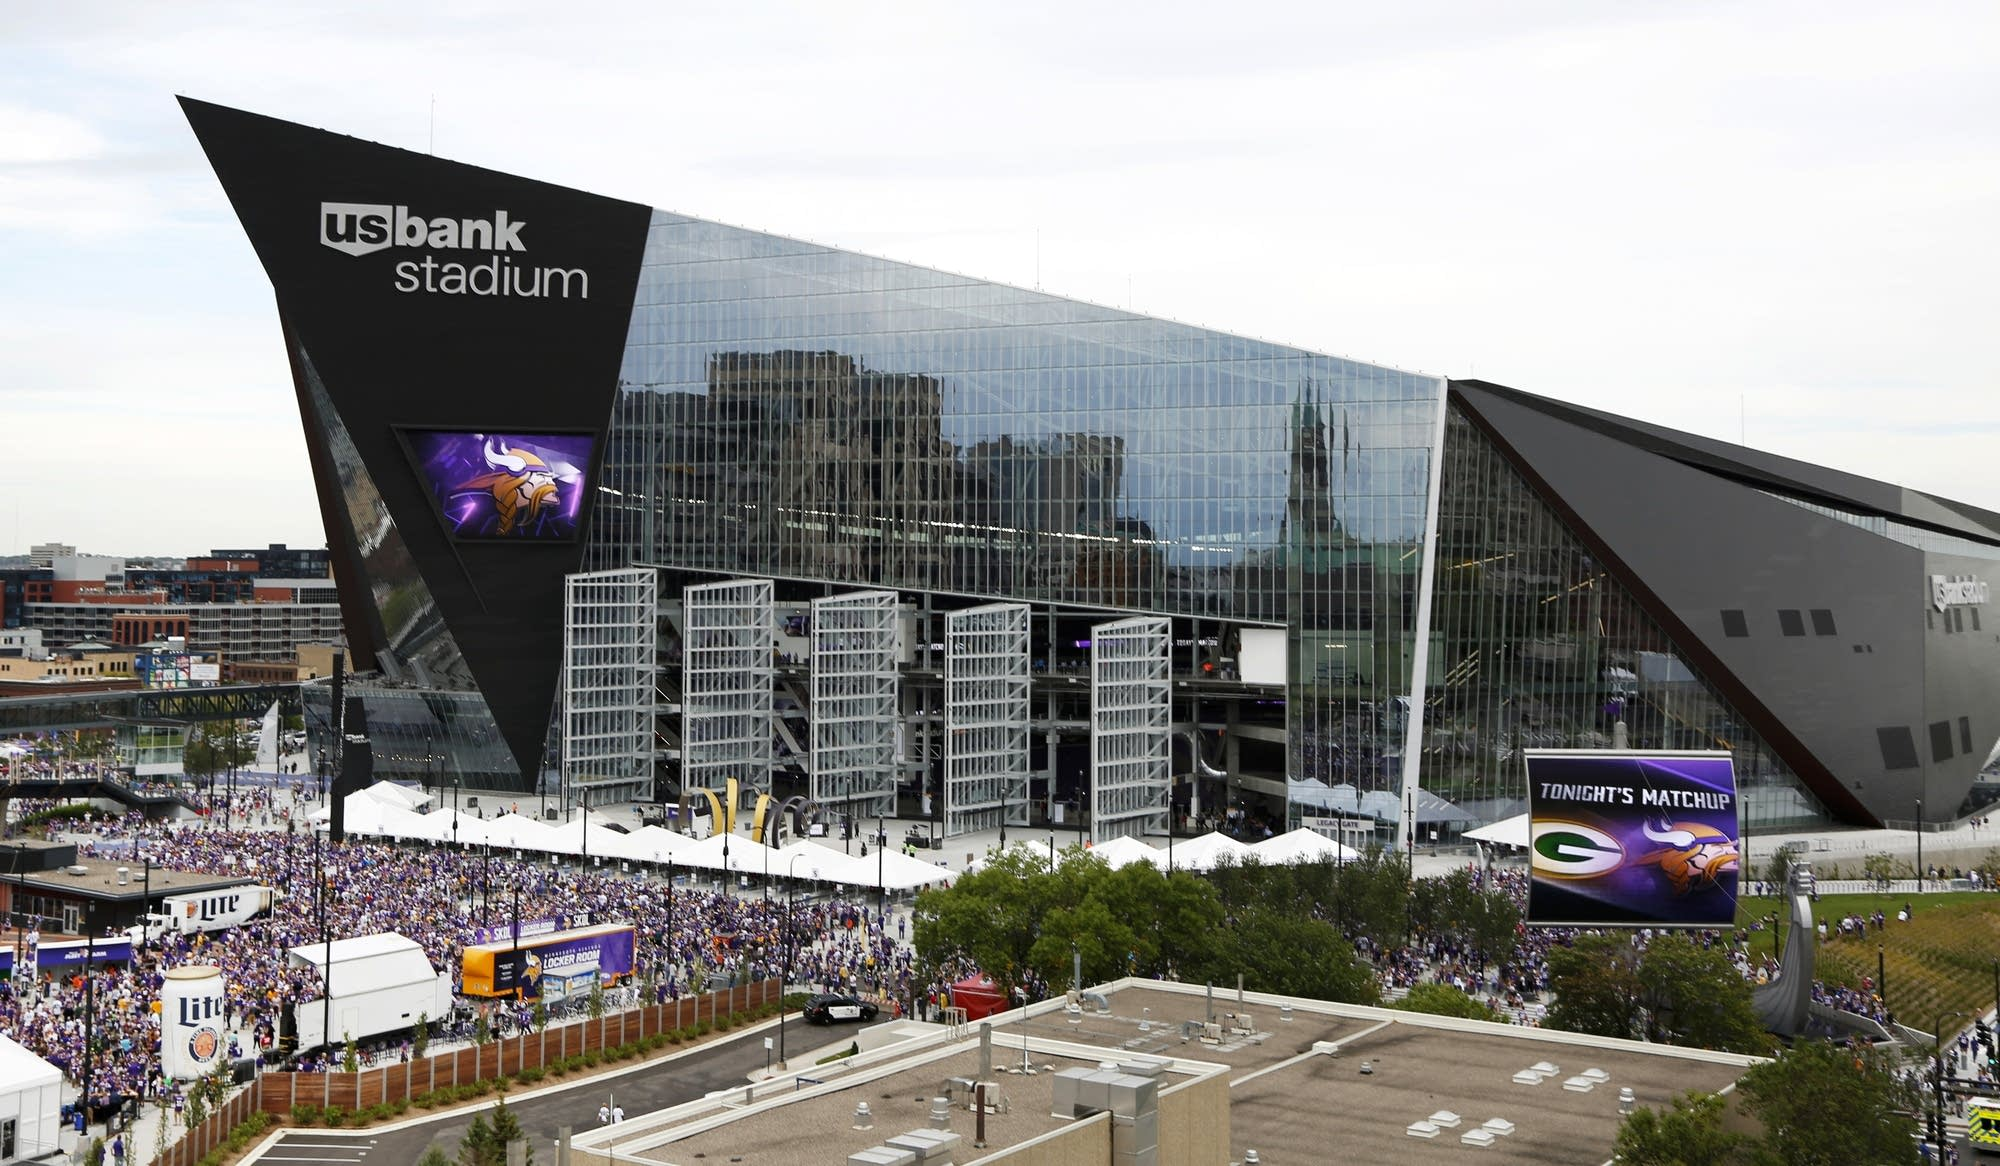 U.S. Bank Stadium & U.S. Bank Stadium to open doors to runners skaters | MPR News